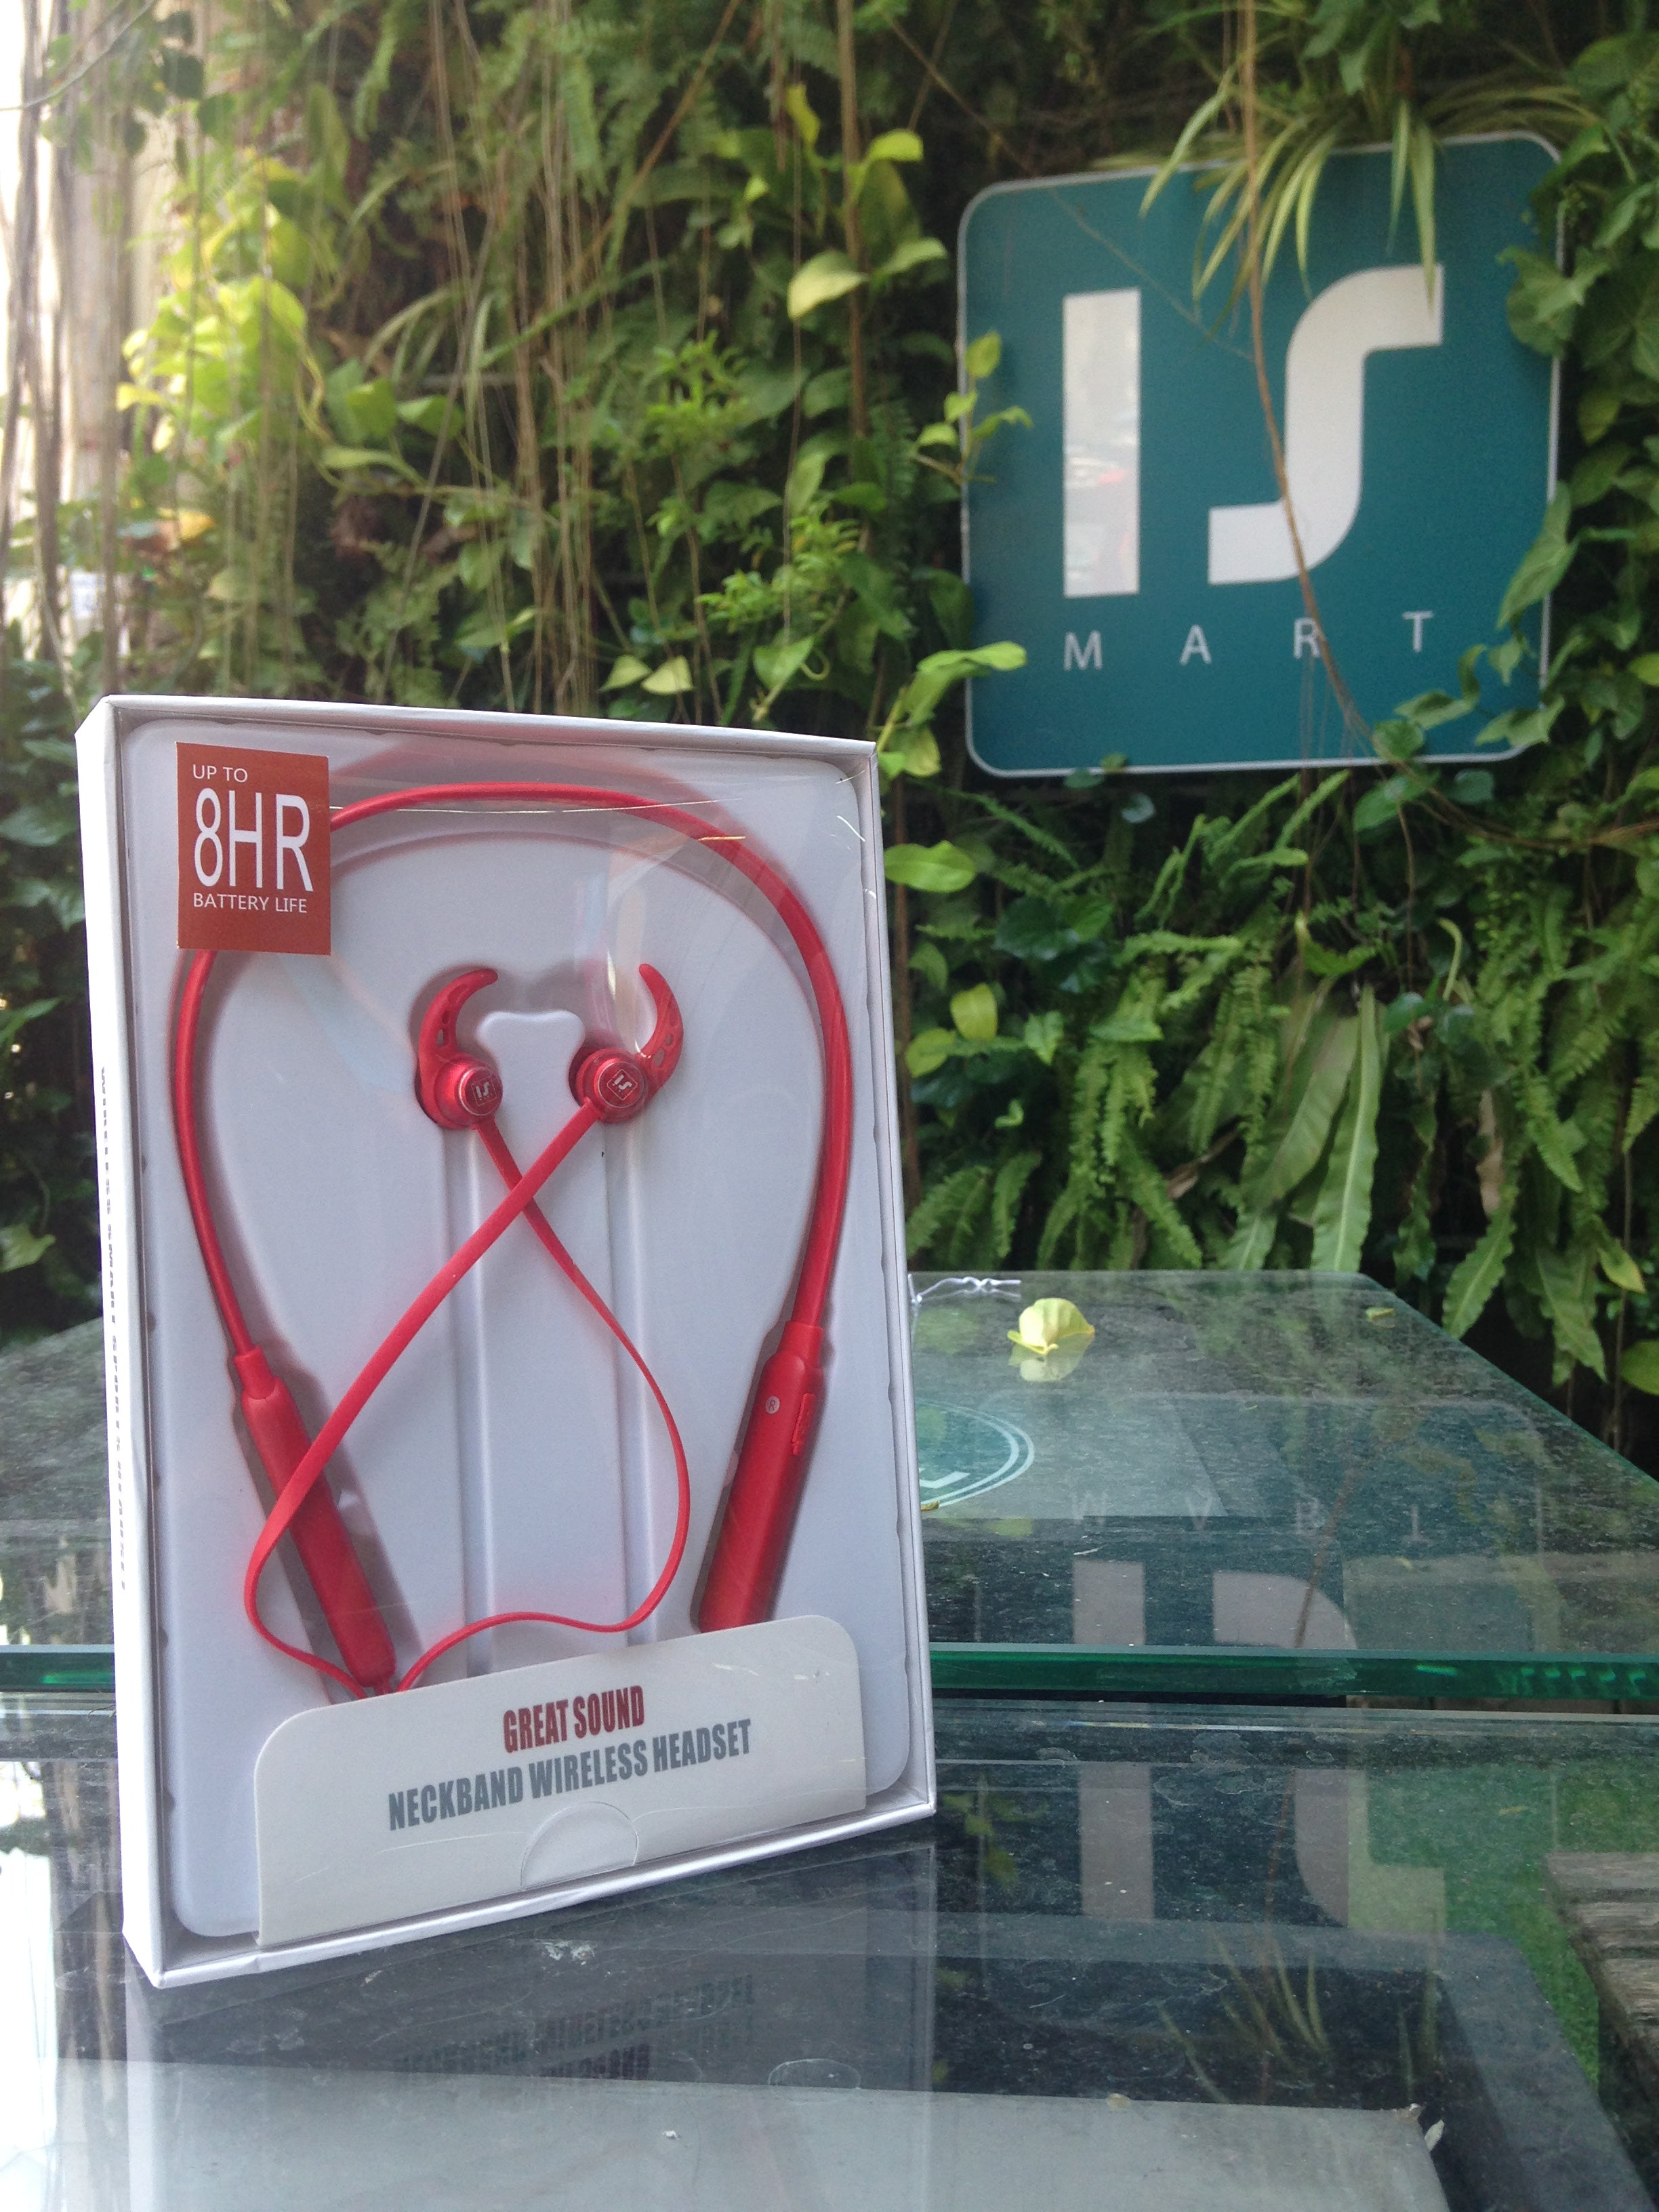 i1029 iSmart Neckband Wireless Headset - i-s-mart.com | No.1 Branded Online Shop in Cambodia